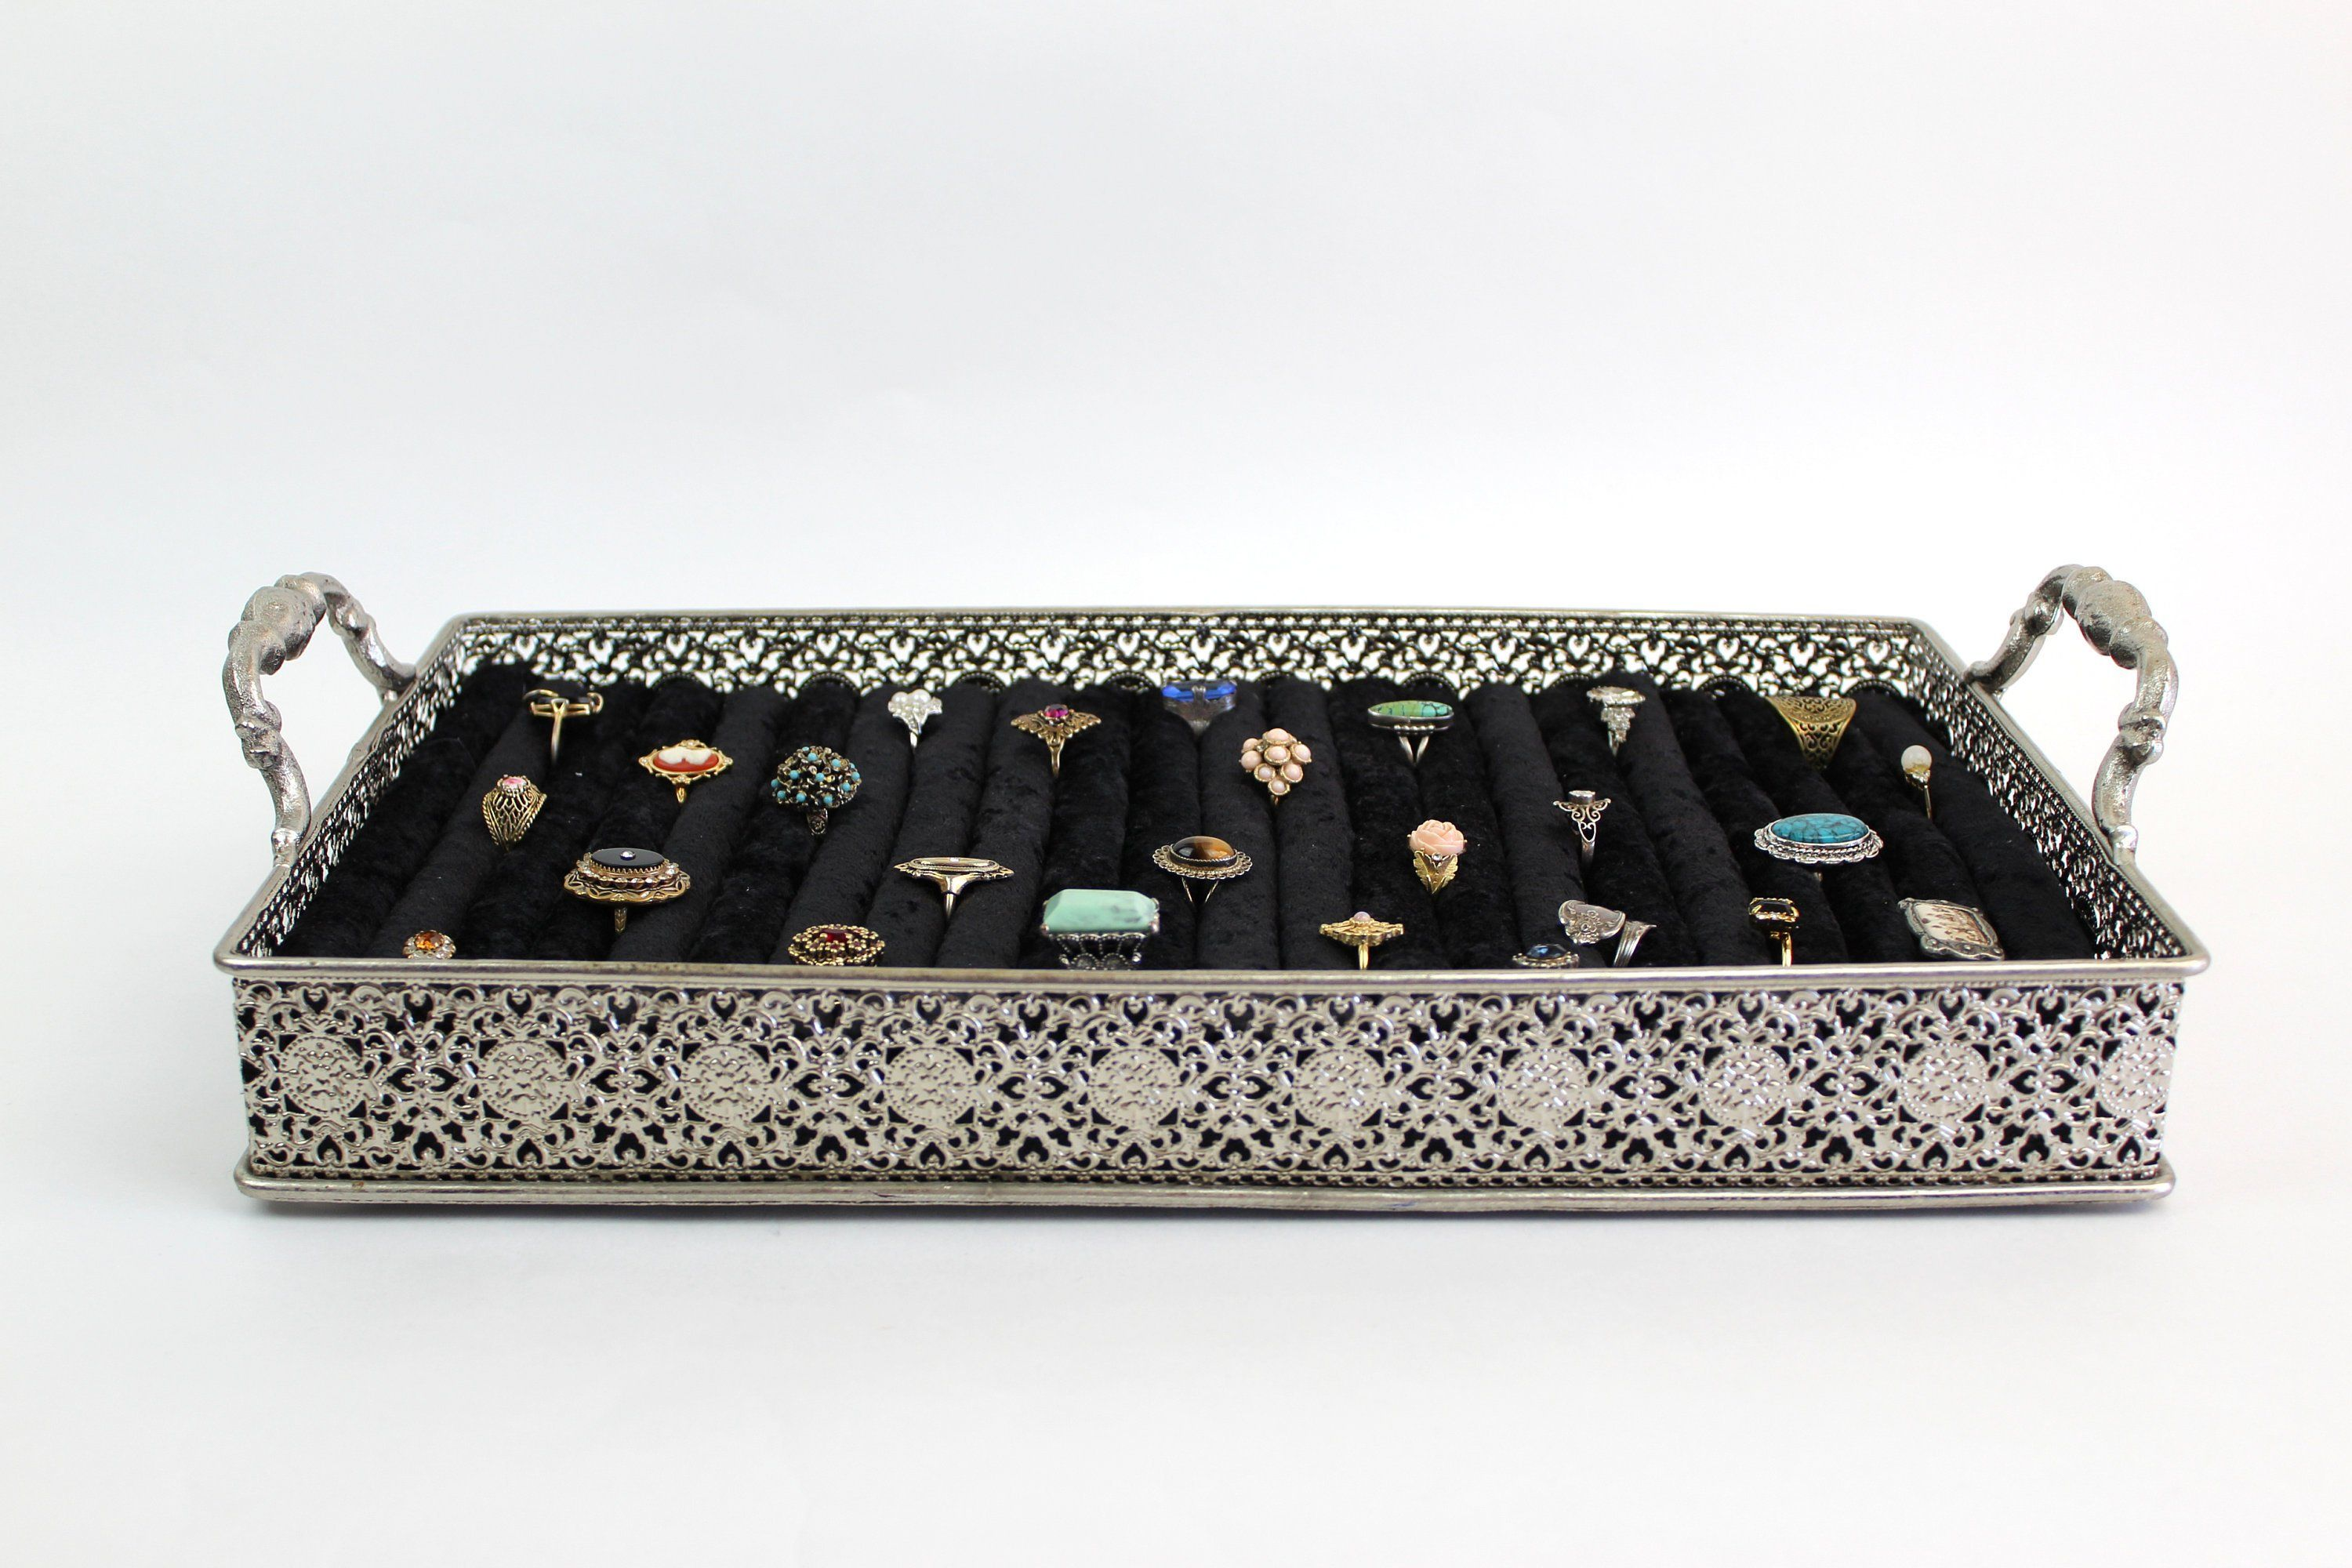 Jewellery Ring Display Ring Stand Holder Jewelry Display Velvet Stand Holder